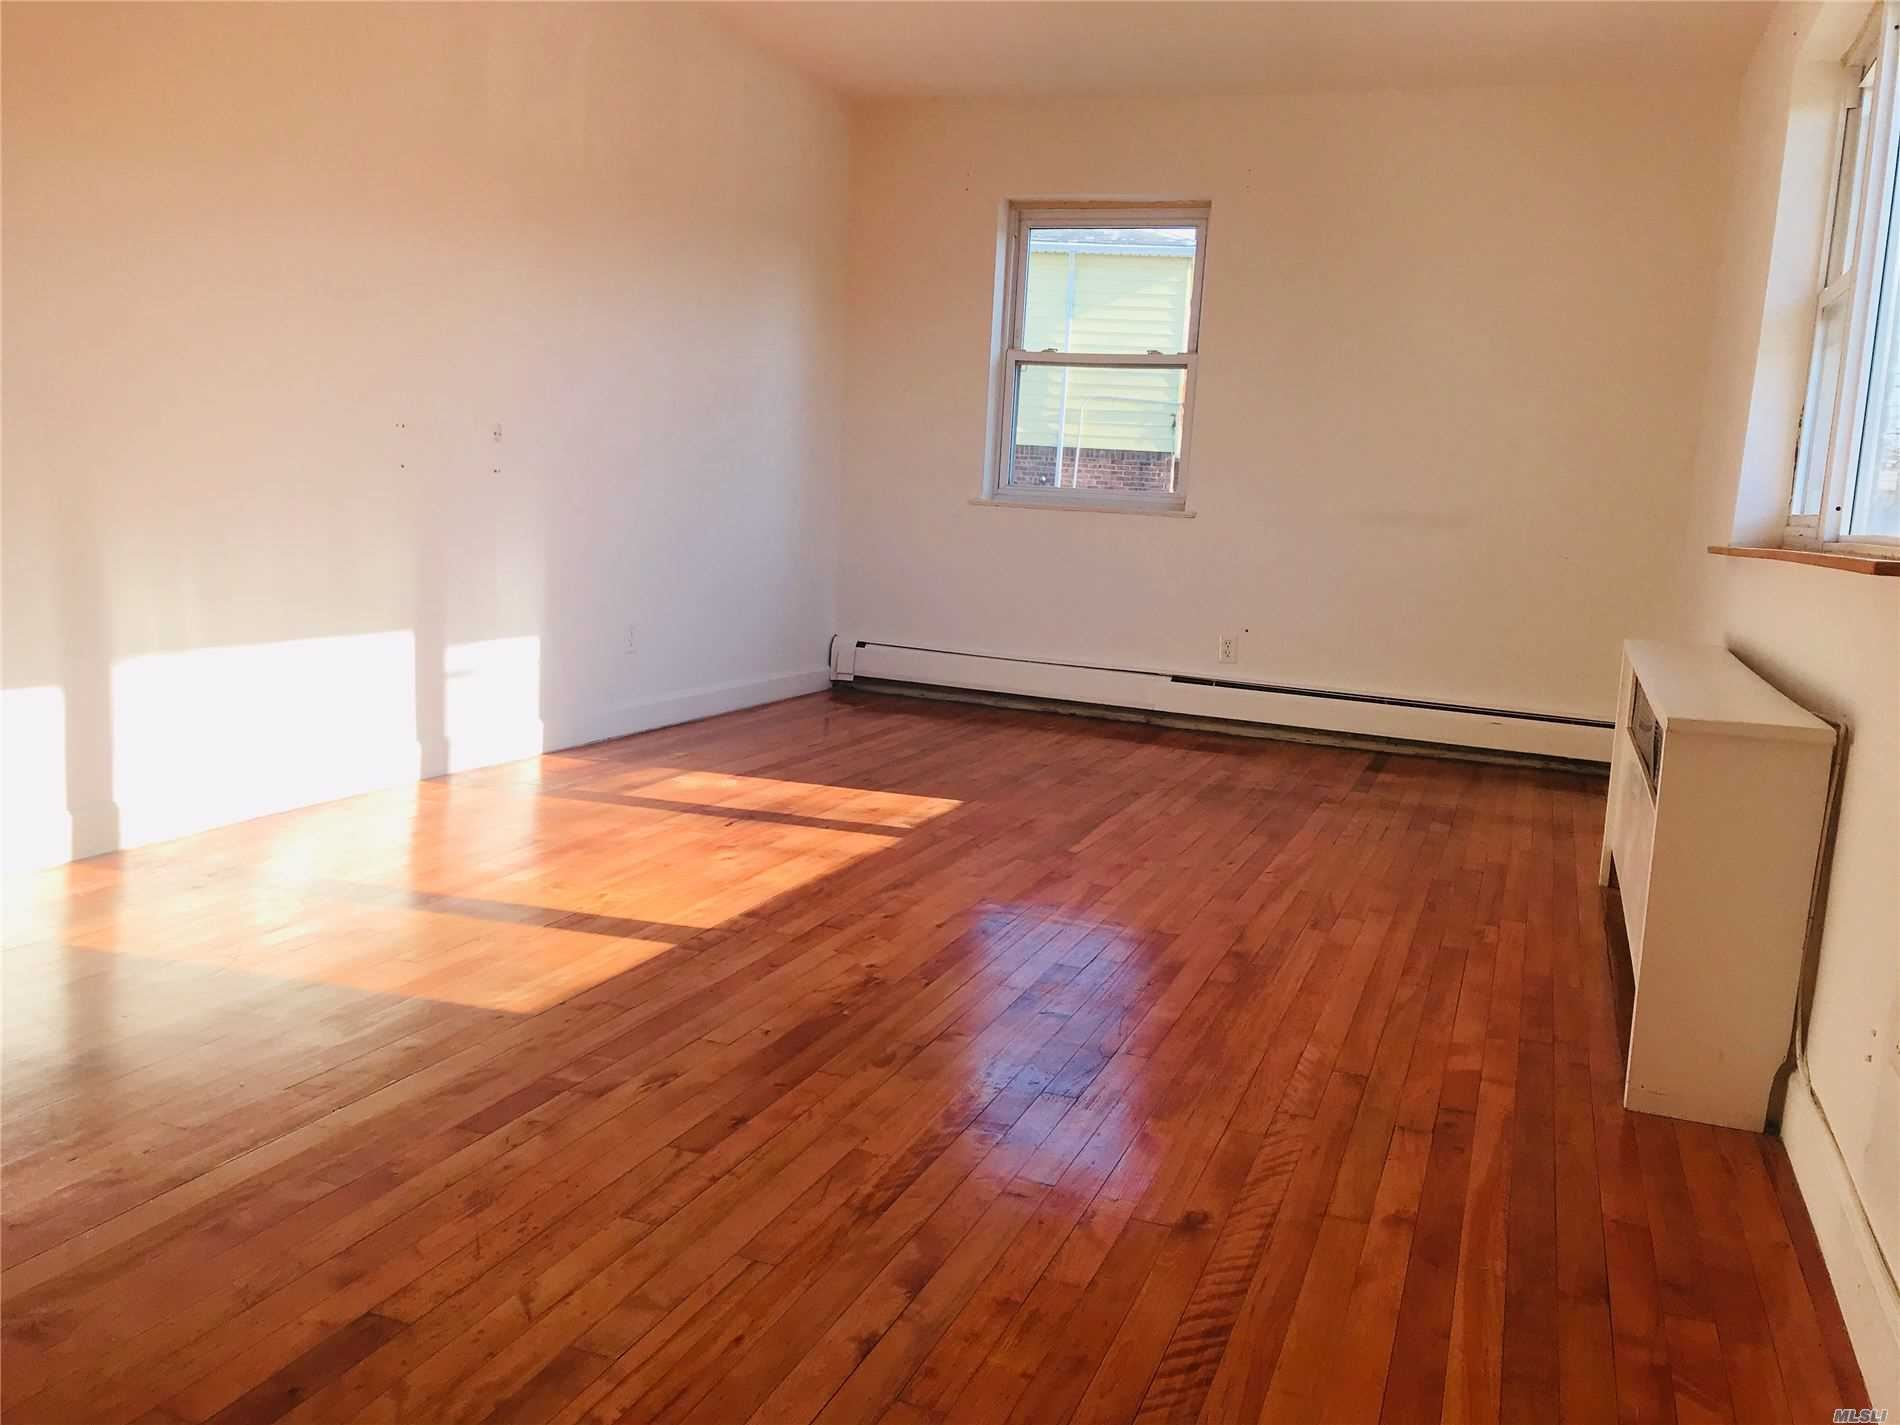 145-15 21 Avenue #2, Whitestone, NY 11357 - MLS#: 3183745